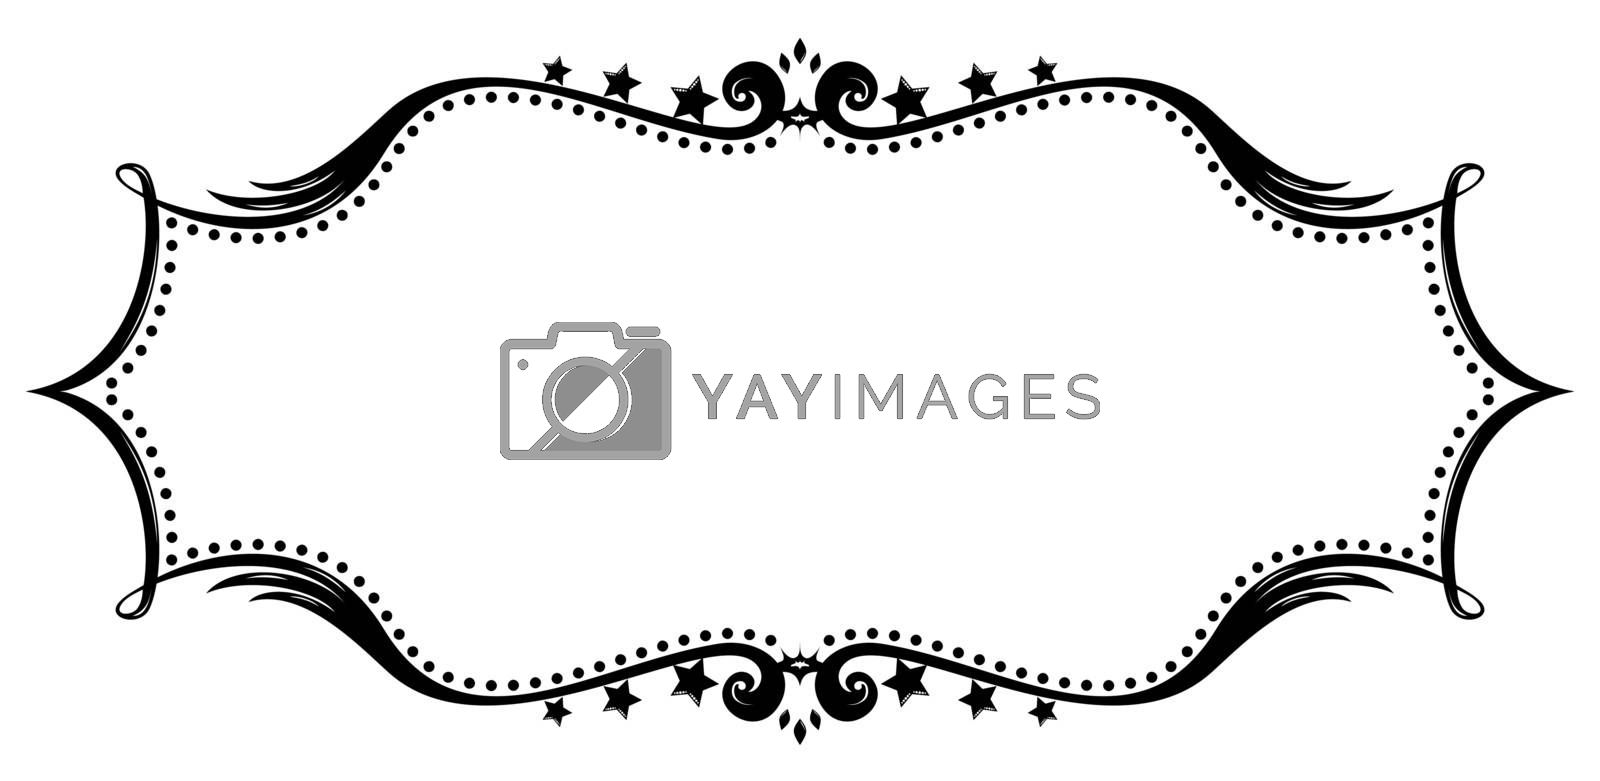 Royalty free image of Retro frame silhouette by oxygen64